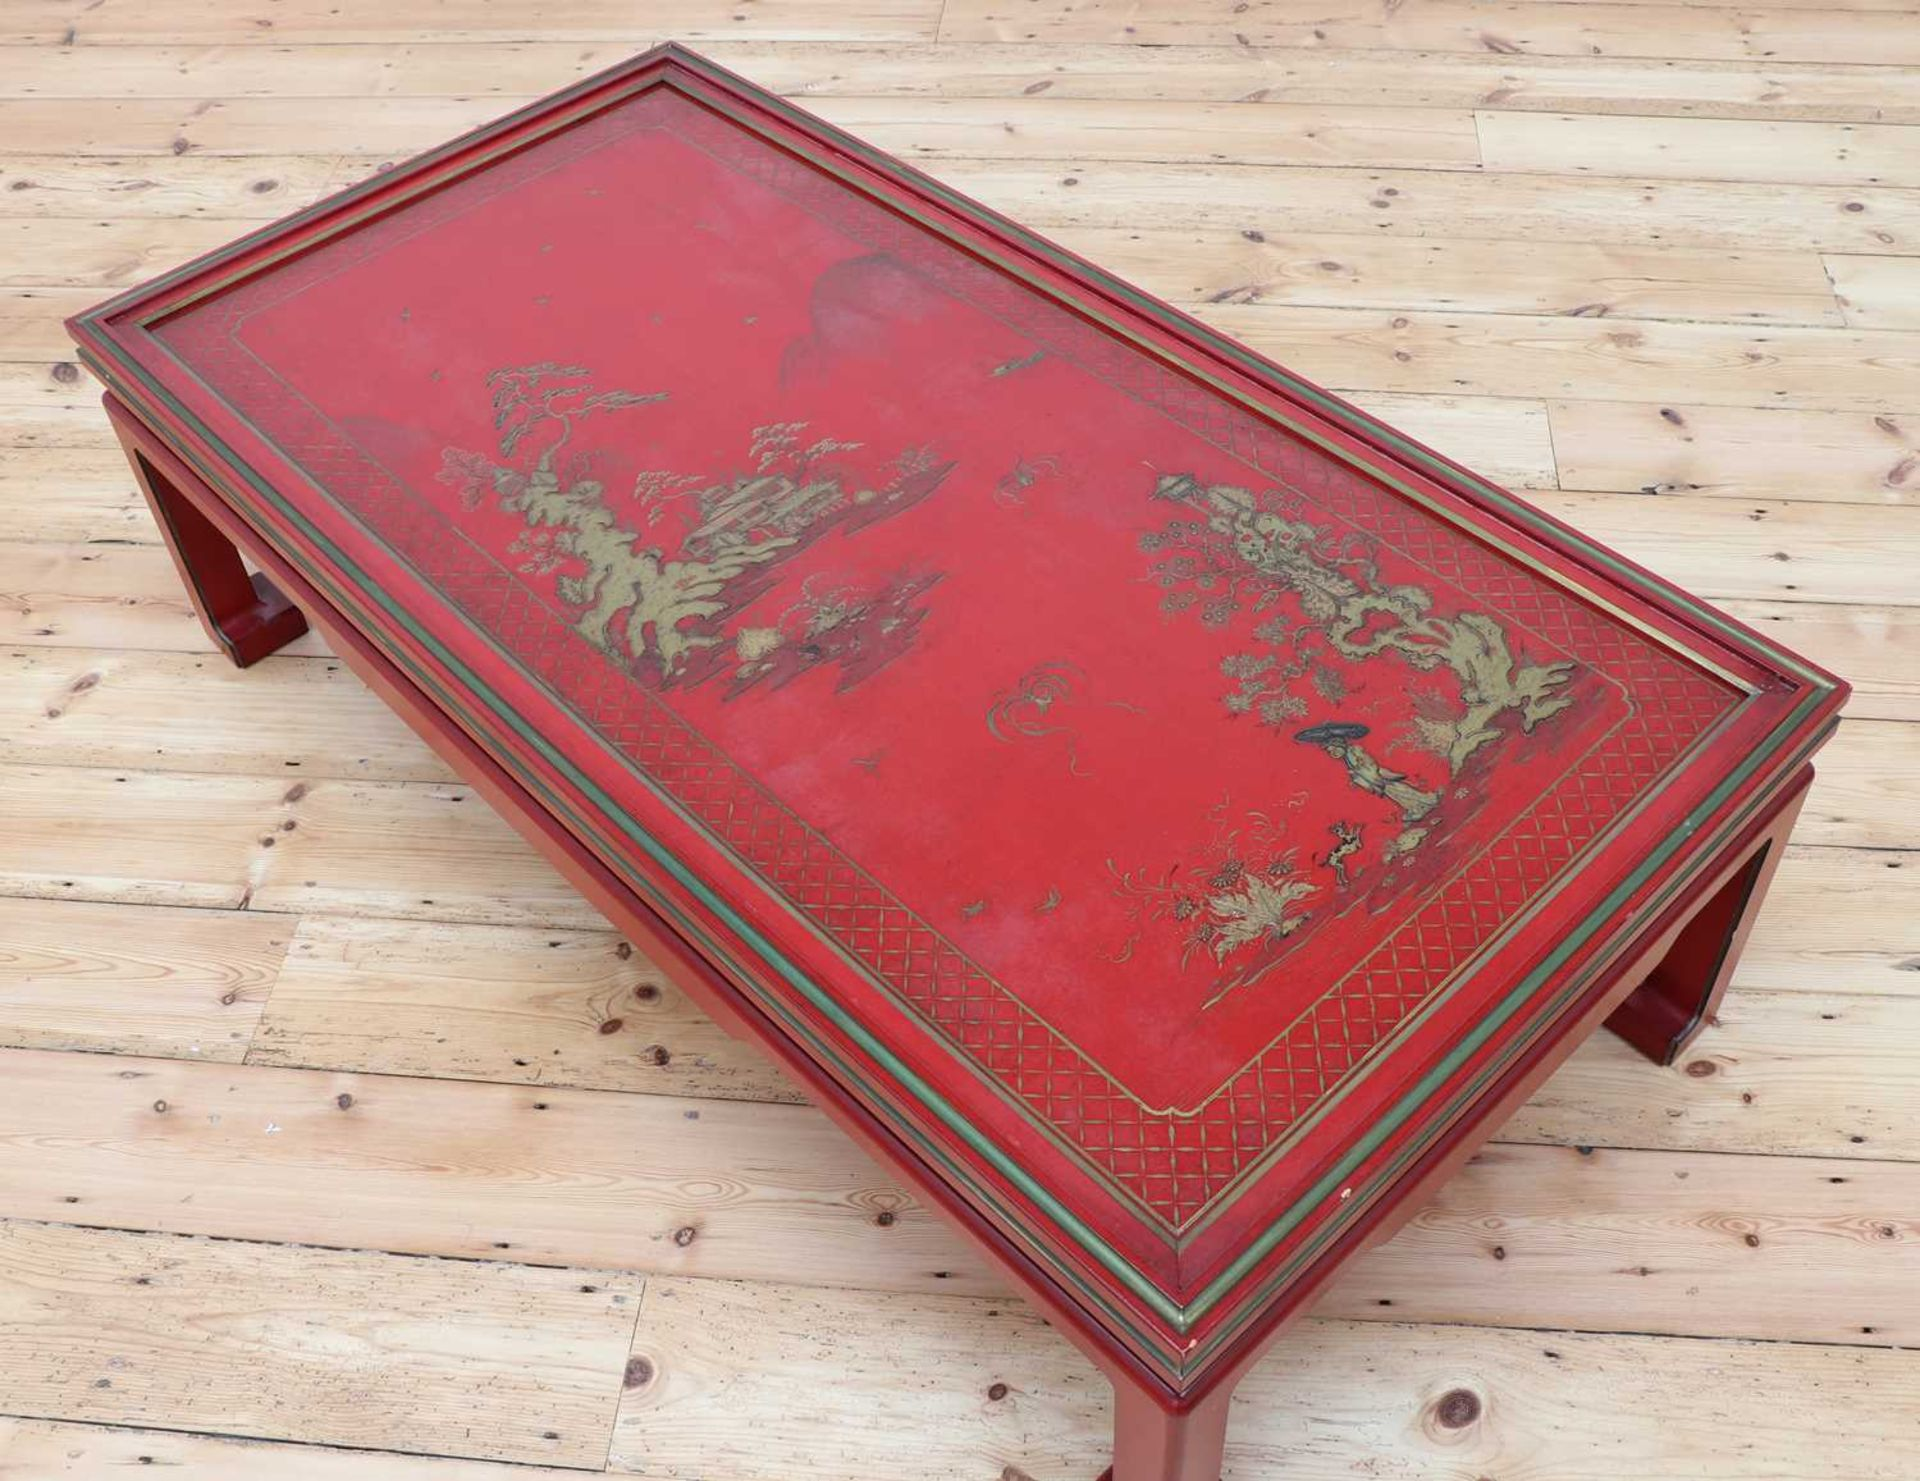 A Chinese-style red-lacquered coffee table in the manner of Mallett & Sons, - Image 6 of 9